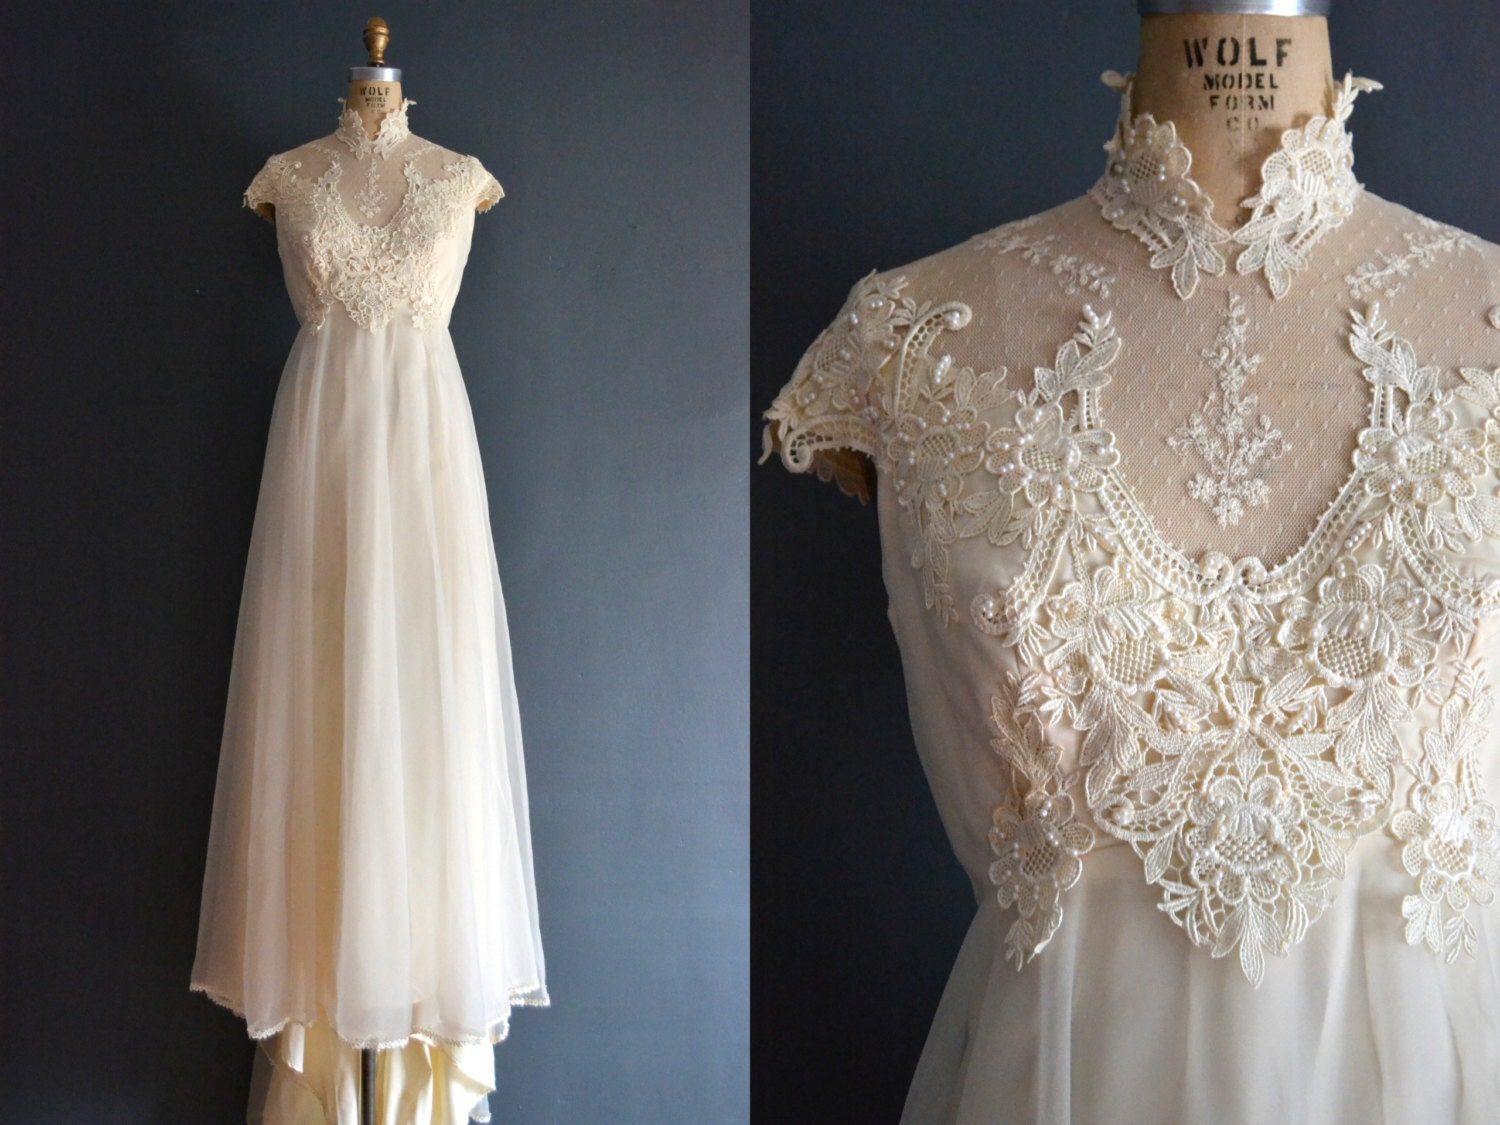 Marlene 70s wedding dress 1970s wedding dress for 1970 s style wedding dresses